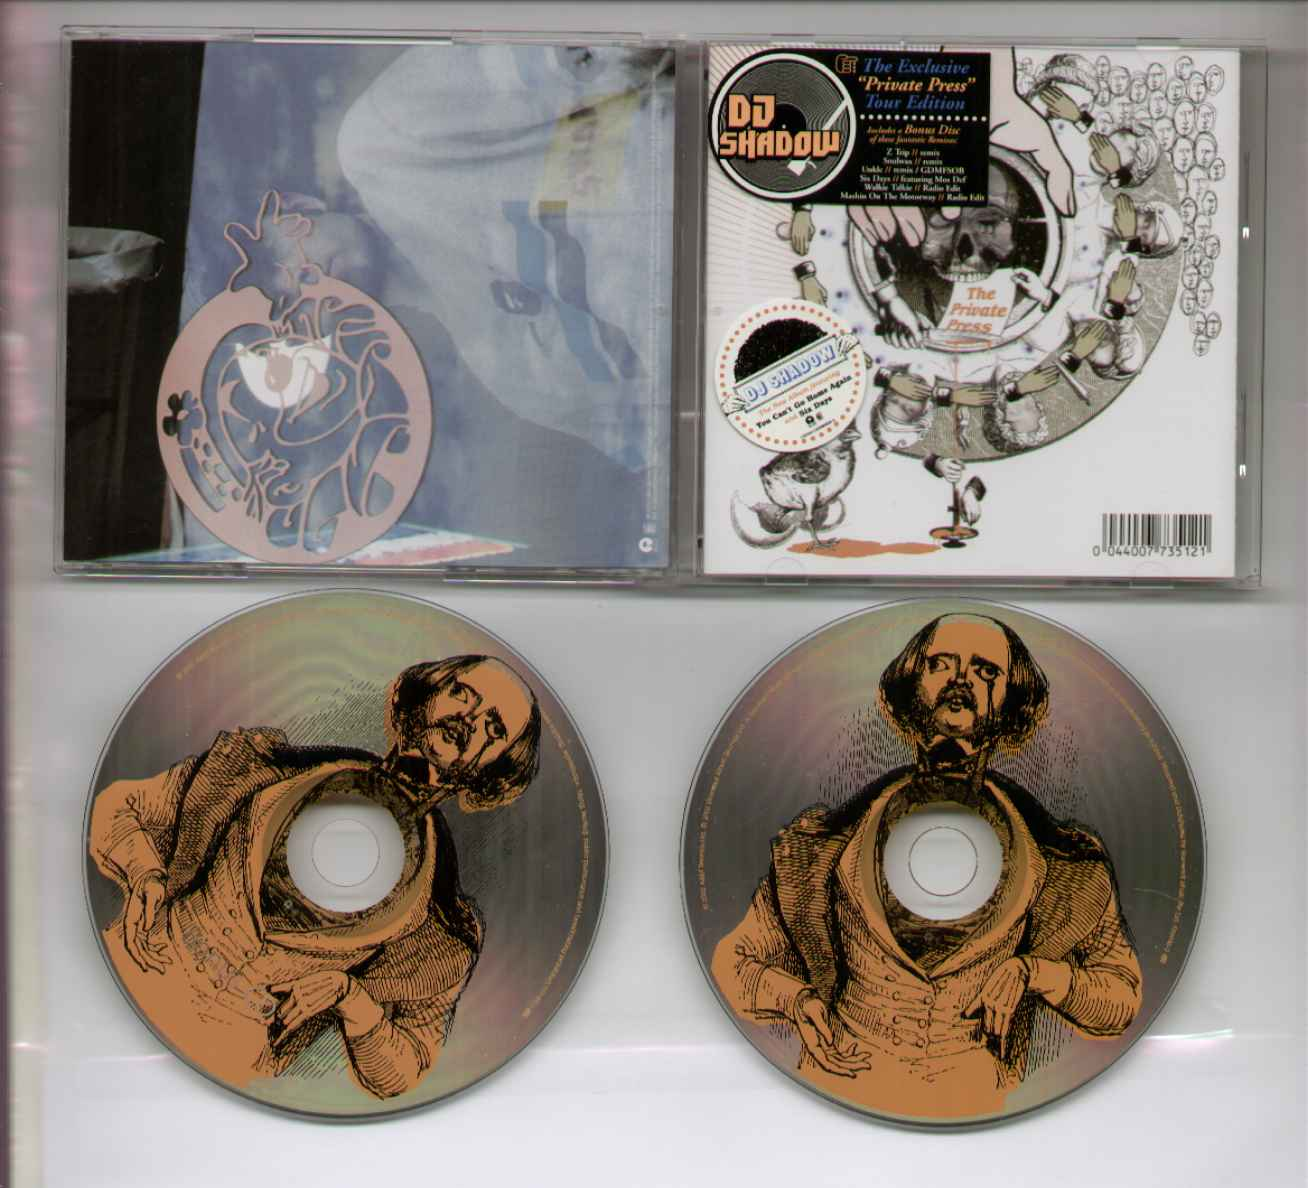 Dj Shadow Private+Press CD